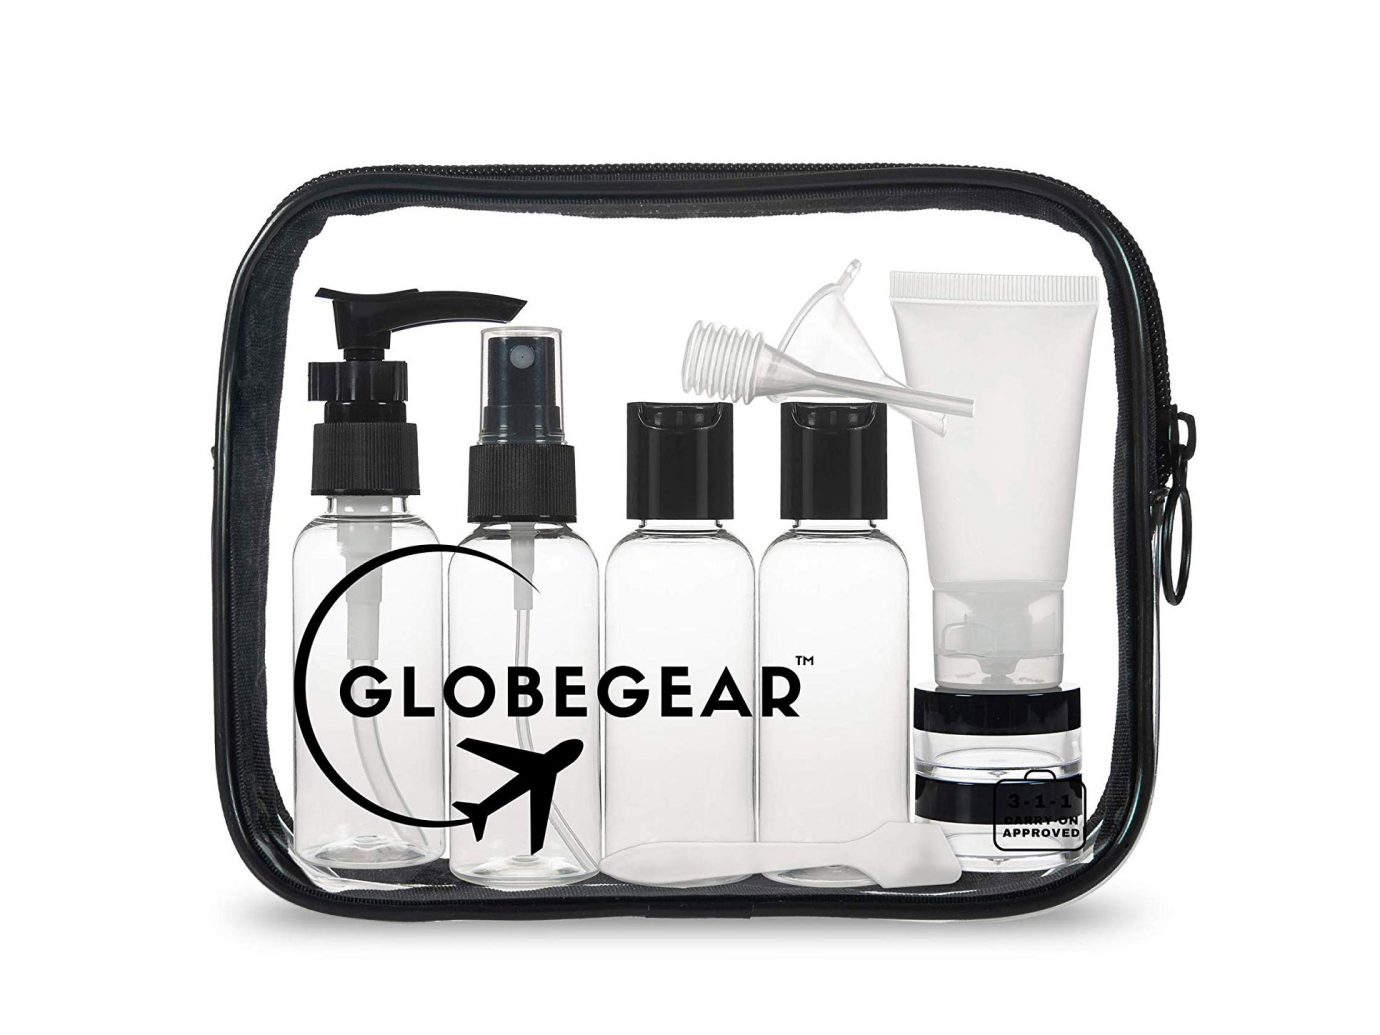 For carry-on: Travel Bottles & TSA-Approved Toiletry Bag